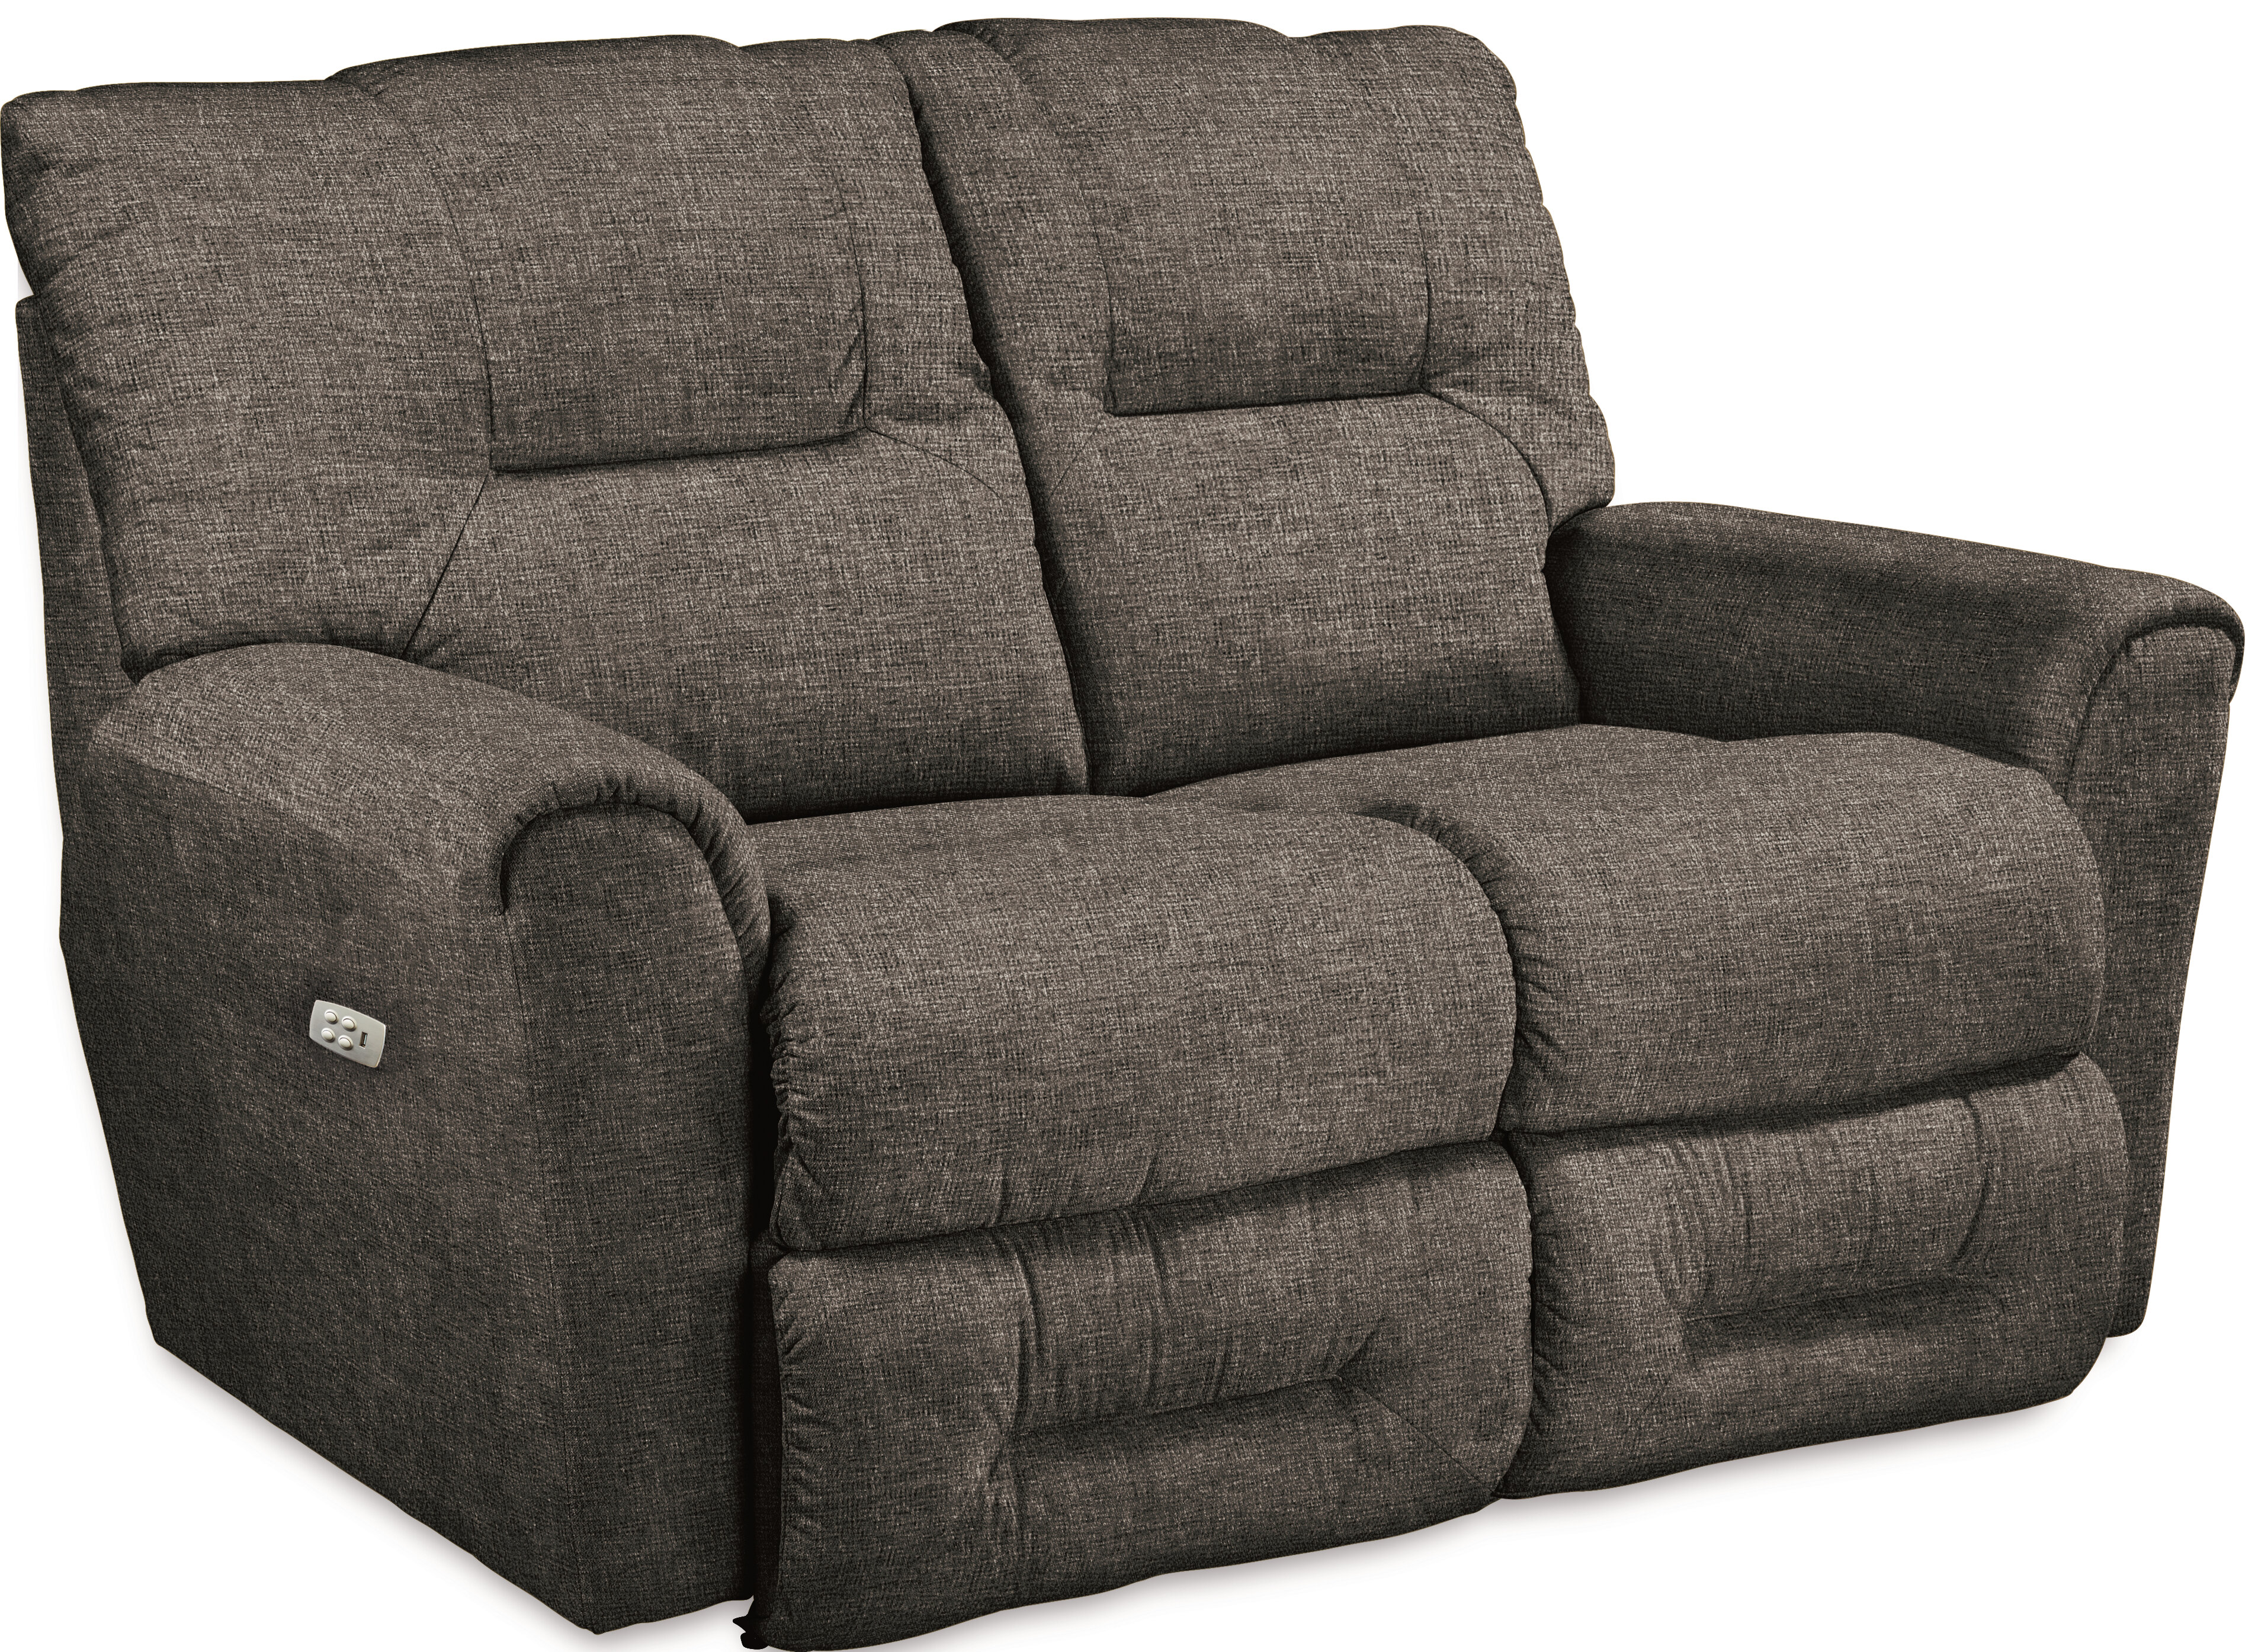 Stupendous Easton Reclining Loveseat Pabps2019 Chair Design Images Pabps2019Com